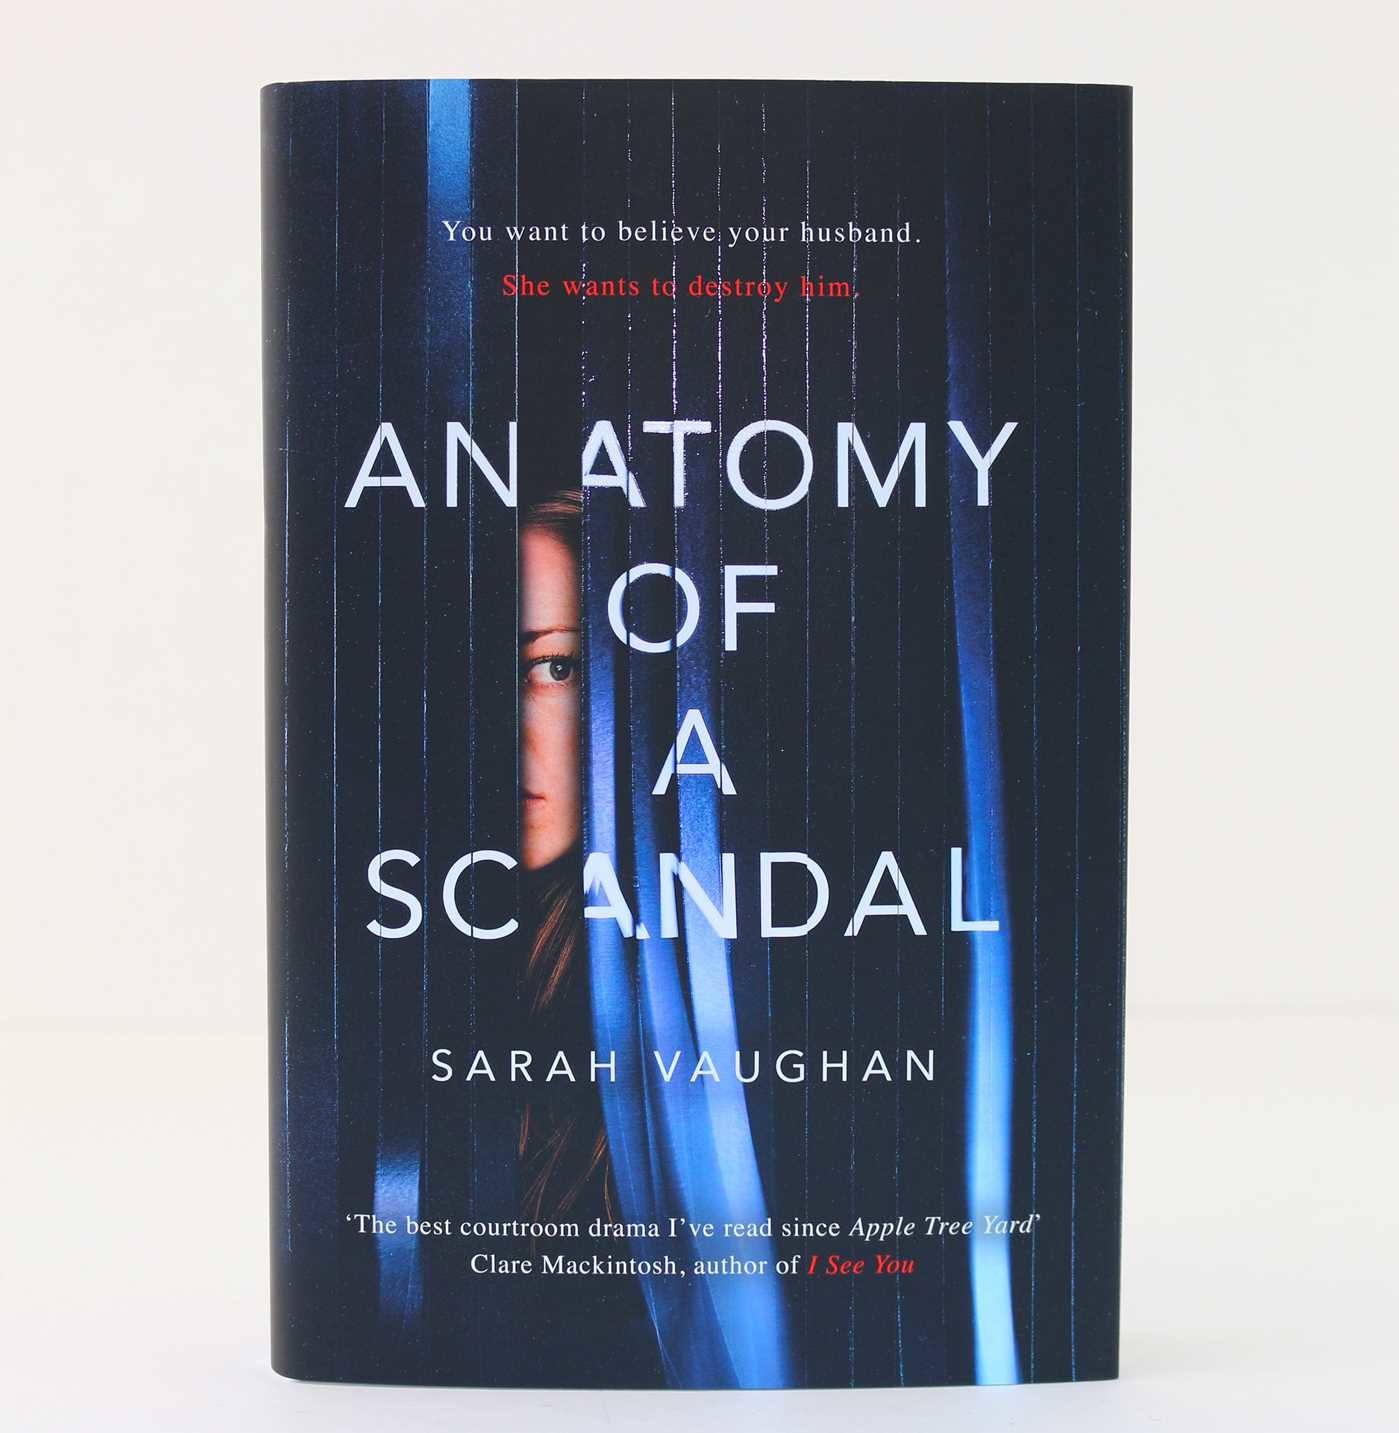 Anatomy of a scandal 9781471164996.in08